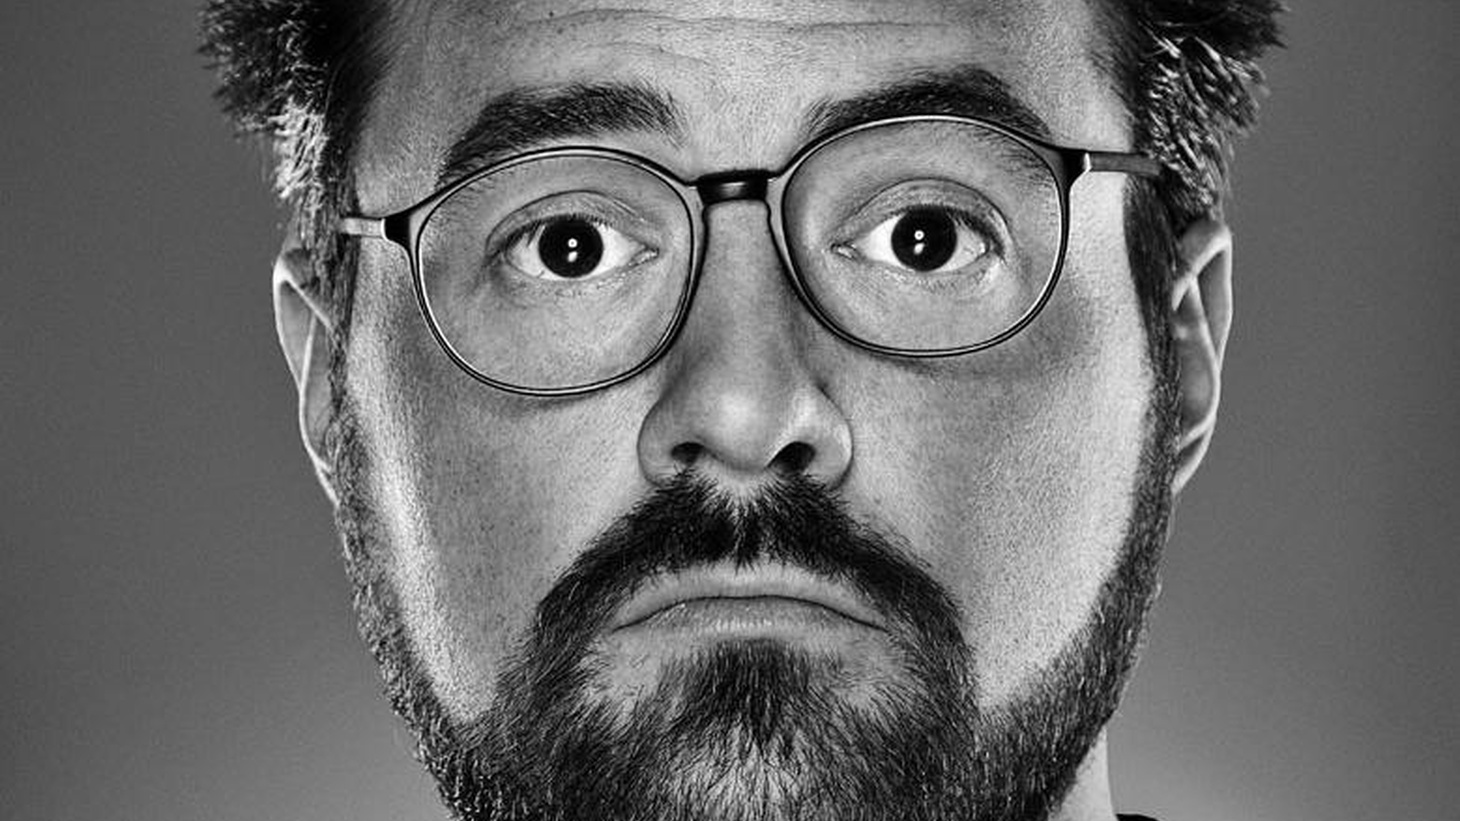 Filmmaker Kevin Smith talks candidly about his admiration for Wayne Gretzky, his love of marijuana and his innovative plan to distribute his new movie, Red State, himself. We met with Smith as he embarks on a cross country tour screening the film in major venues. He discusses his rationale for bucking the traditional marketing route, reflects on his career in Hollywood, how smoking pot makes him more at ease with himself, and how some of his box office failures made him re-evaluate his ambition as a filmmaker.